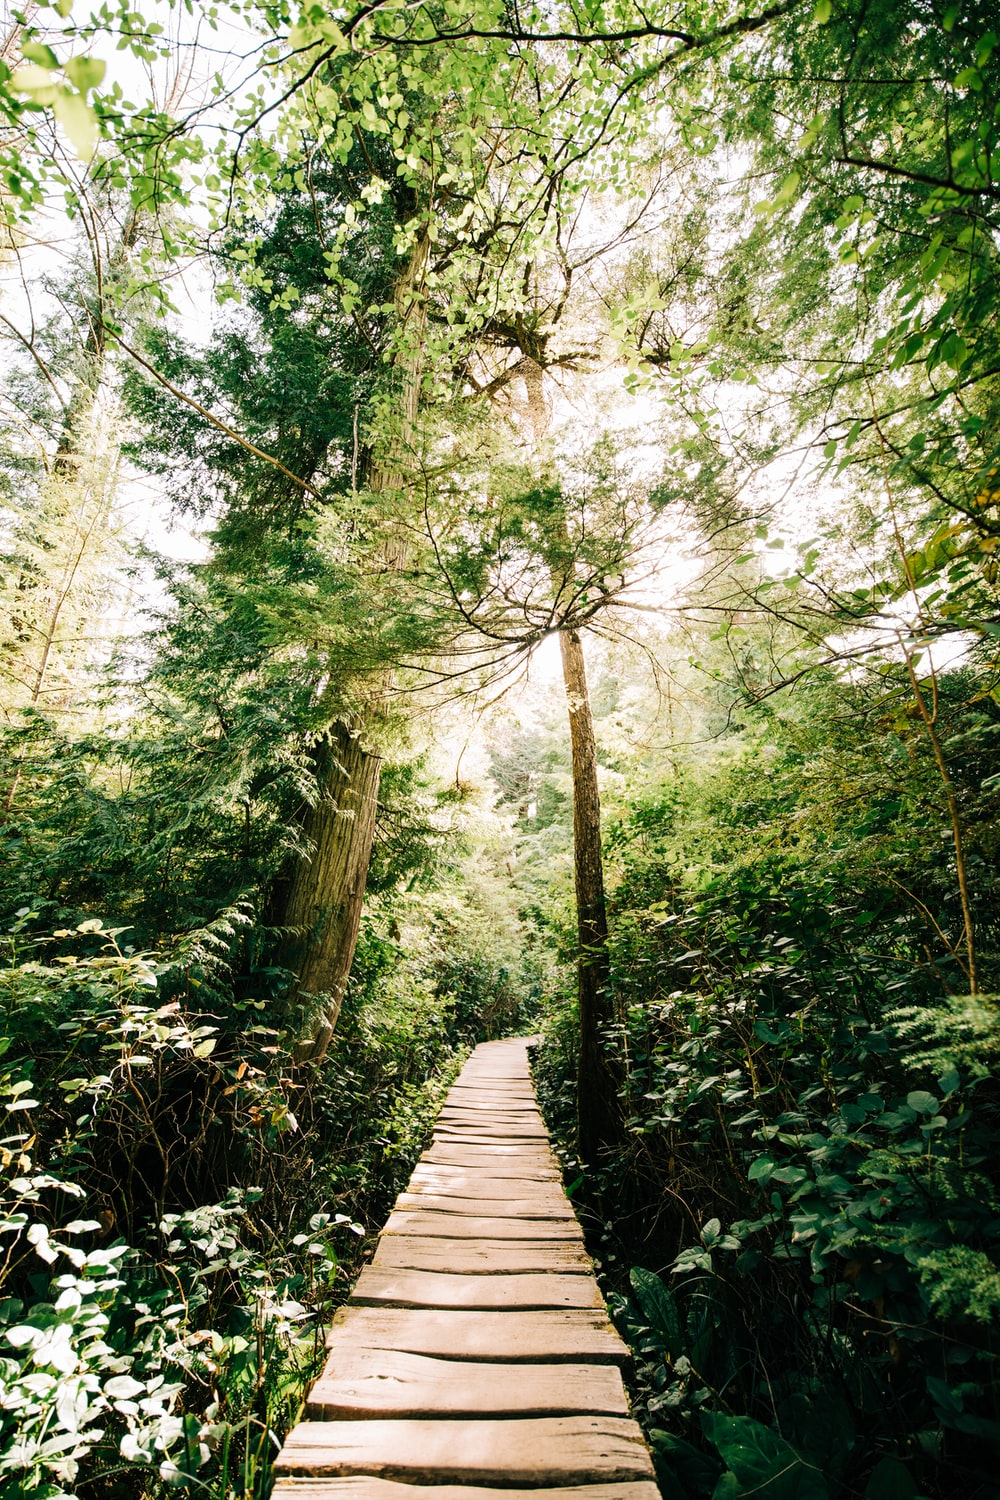 brown wooden pathway between green trees during daytime